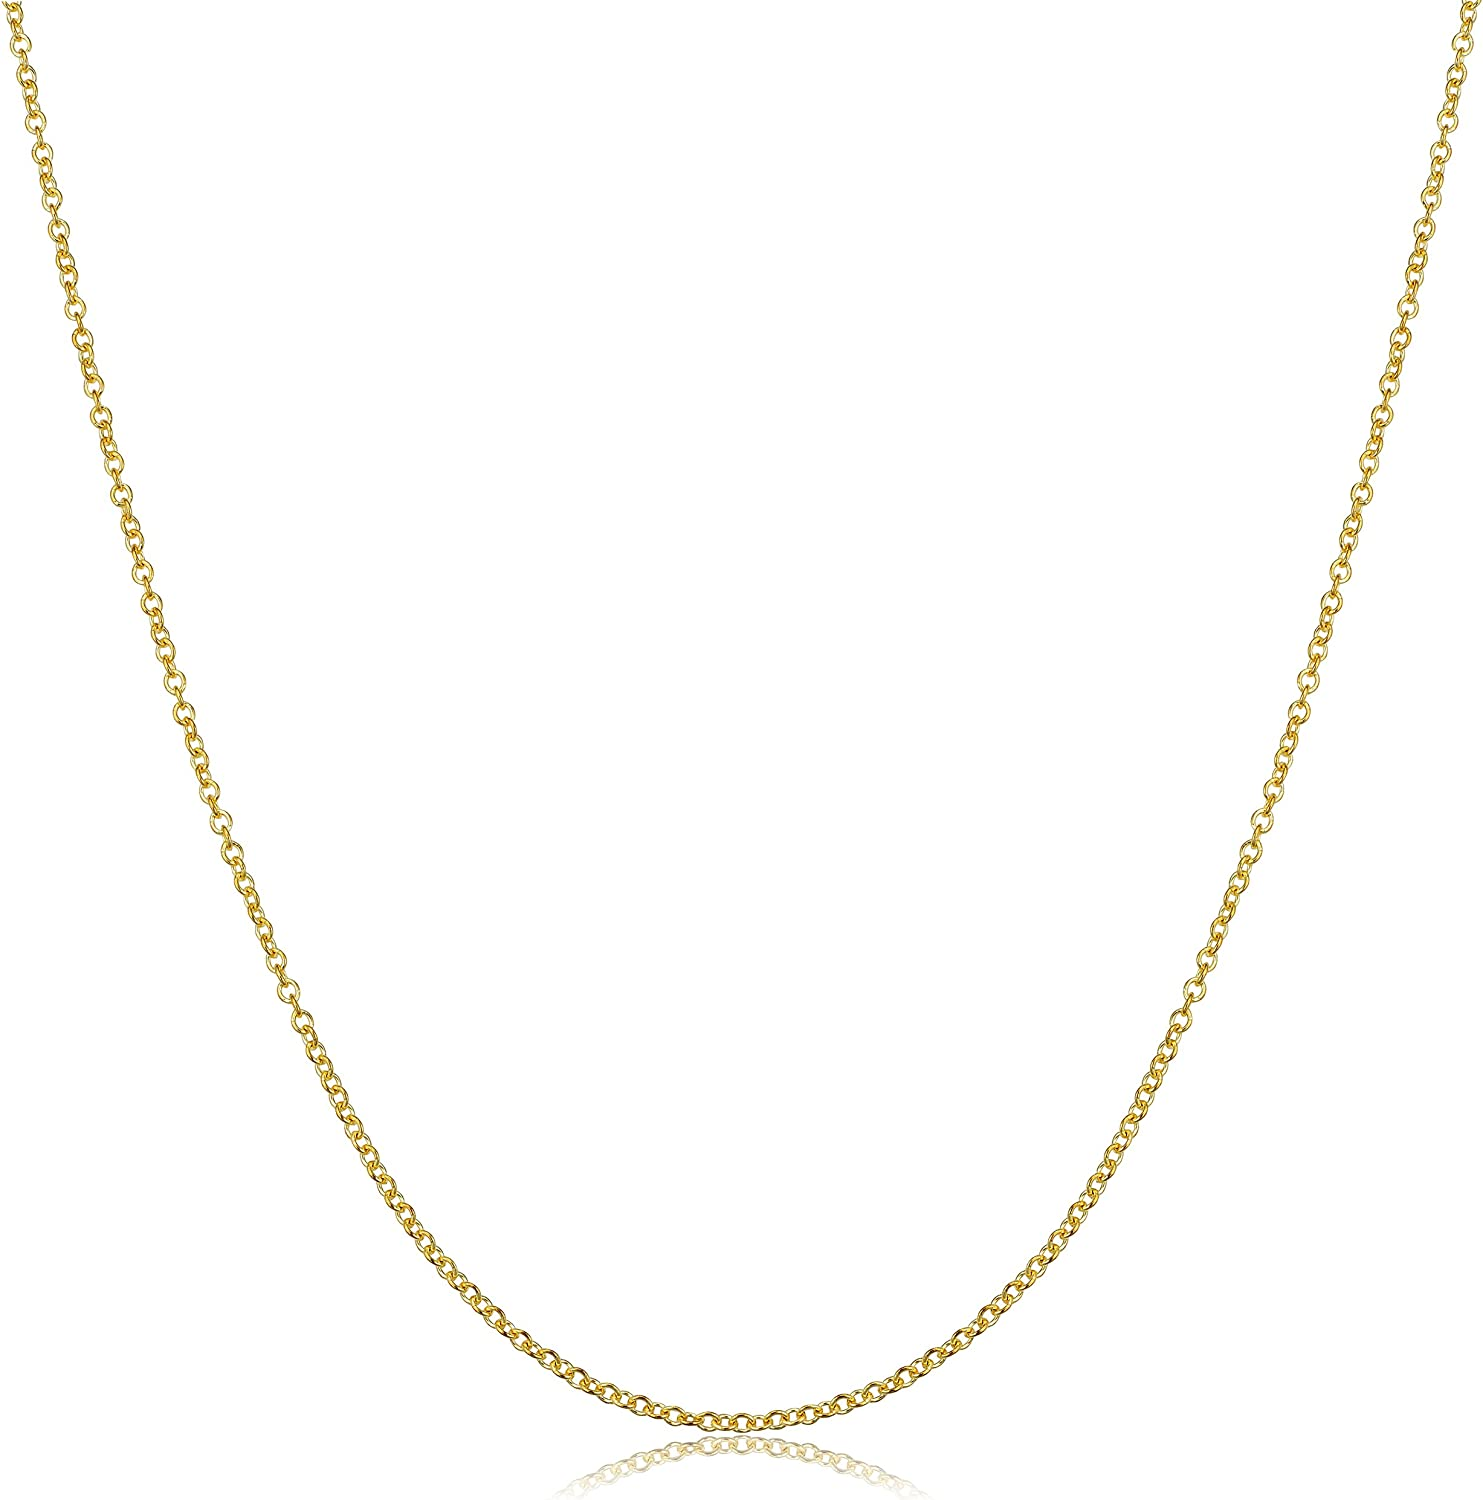 Kooljewelry 10k Yellow Gold Round Cable Chain Necklace (1.4 mm, 18 inch)